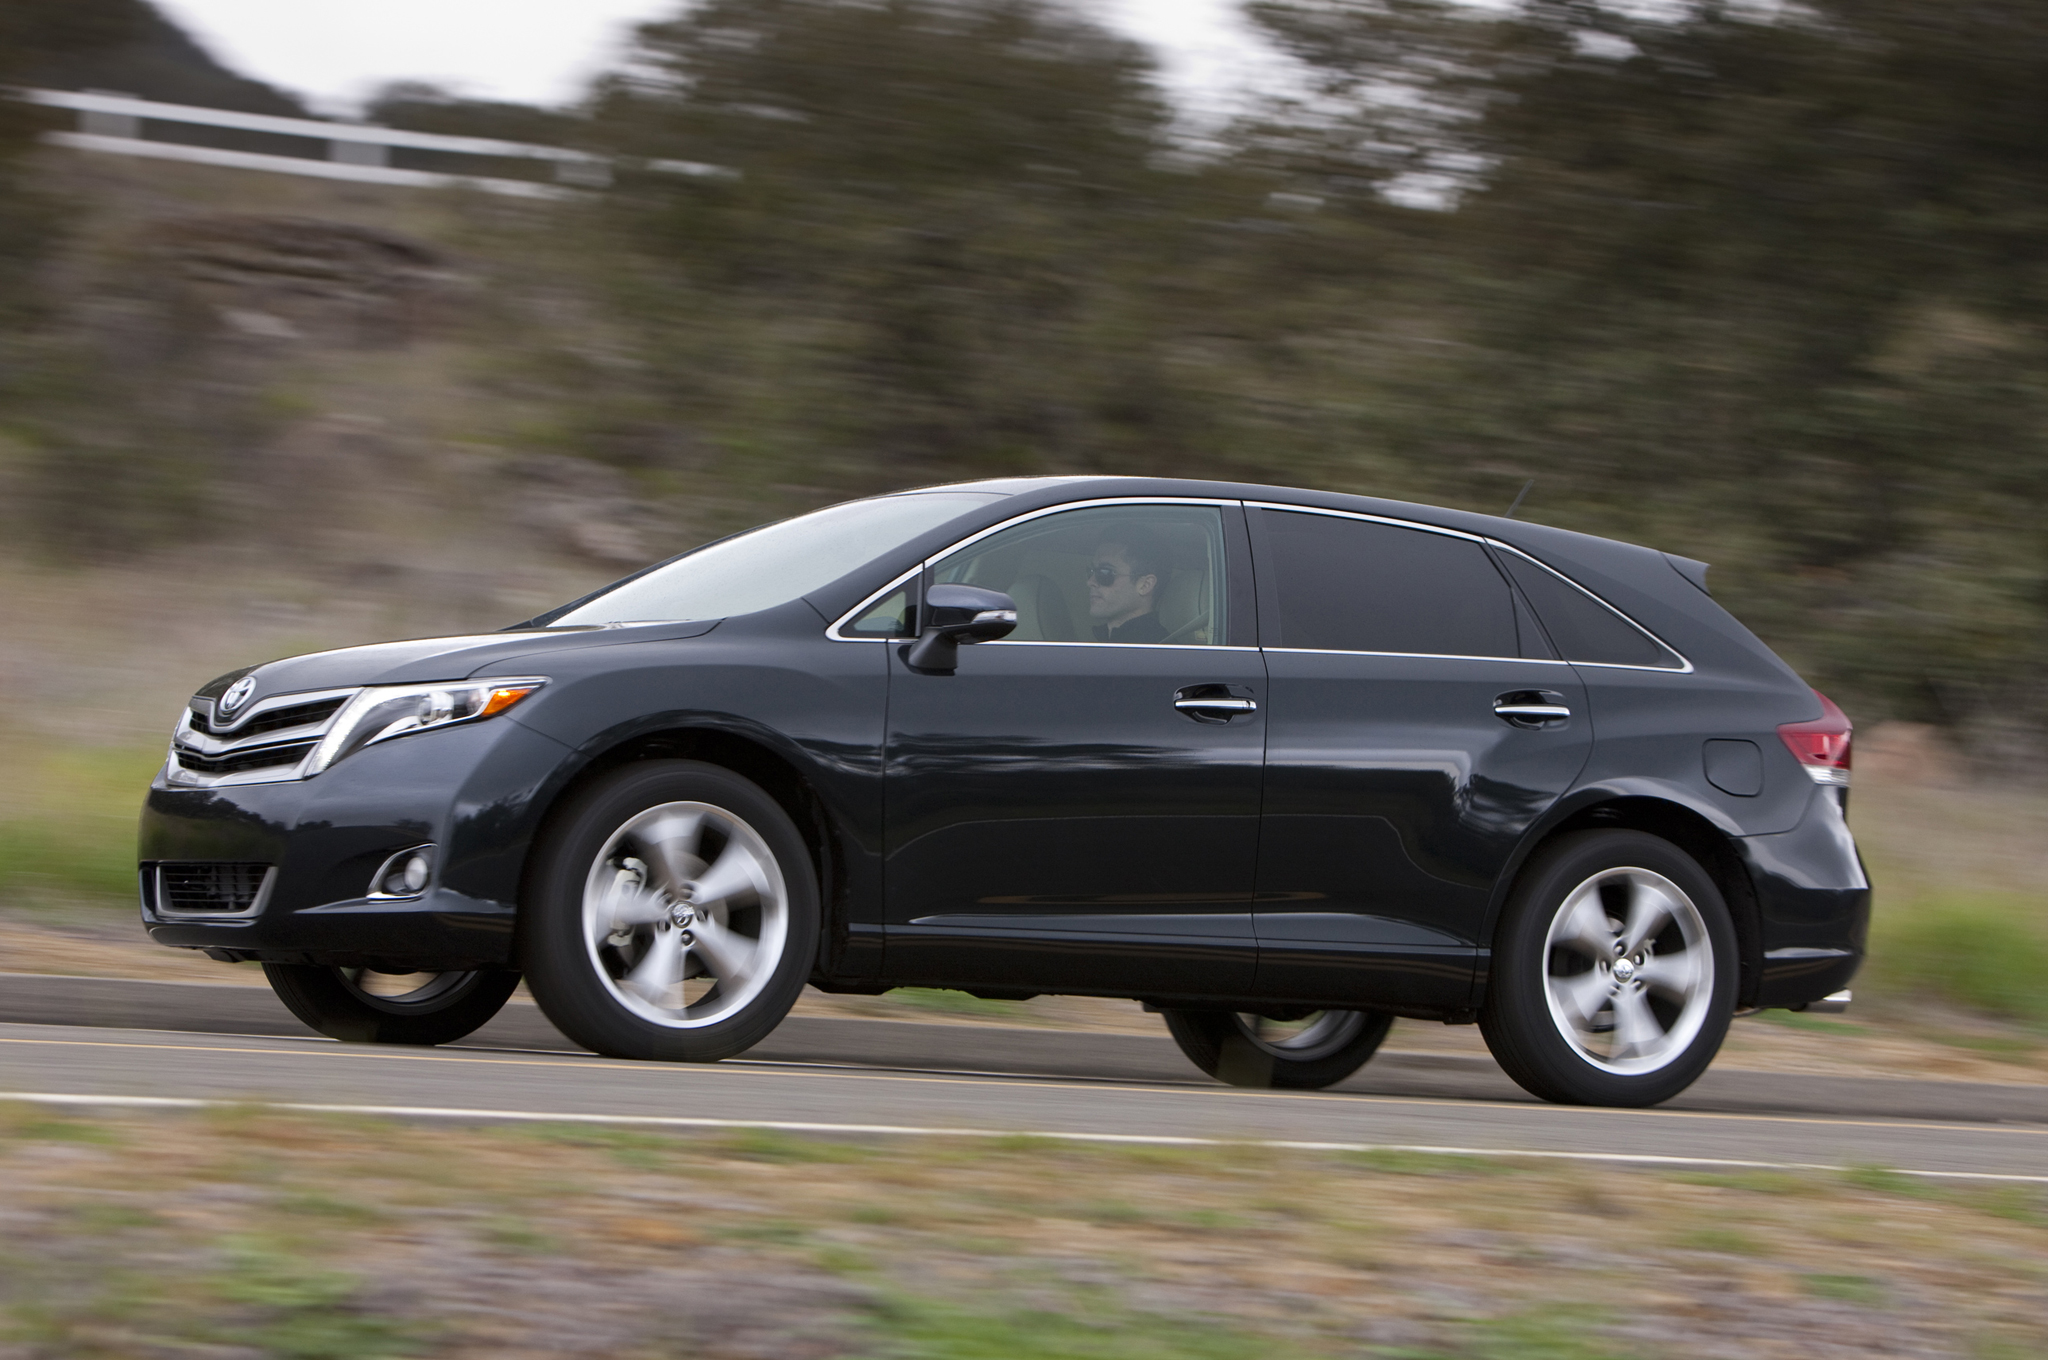 2014 toyota venza pictures information and specs auto. Black Bedroom Furniture Sets. Home Design Ideas